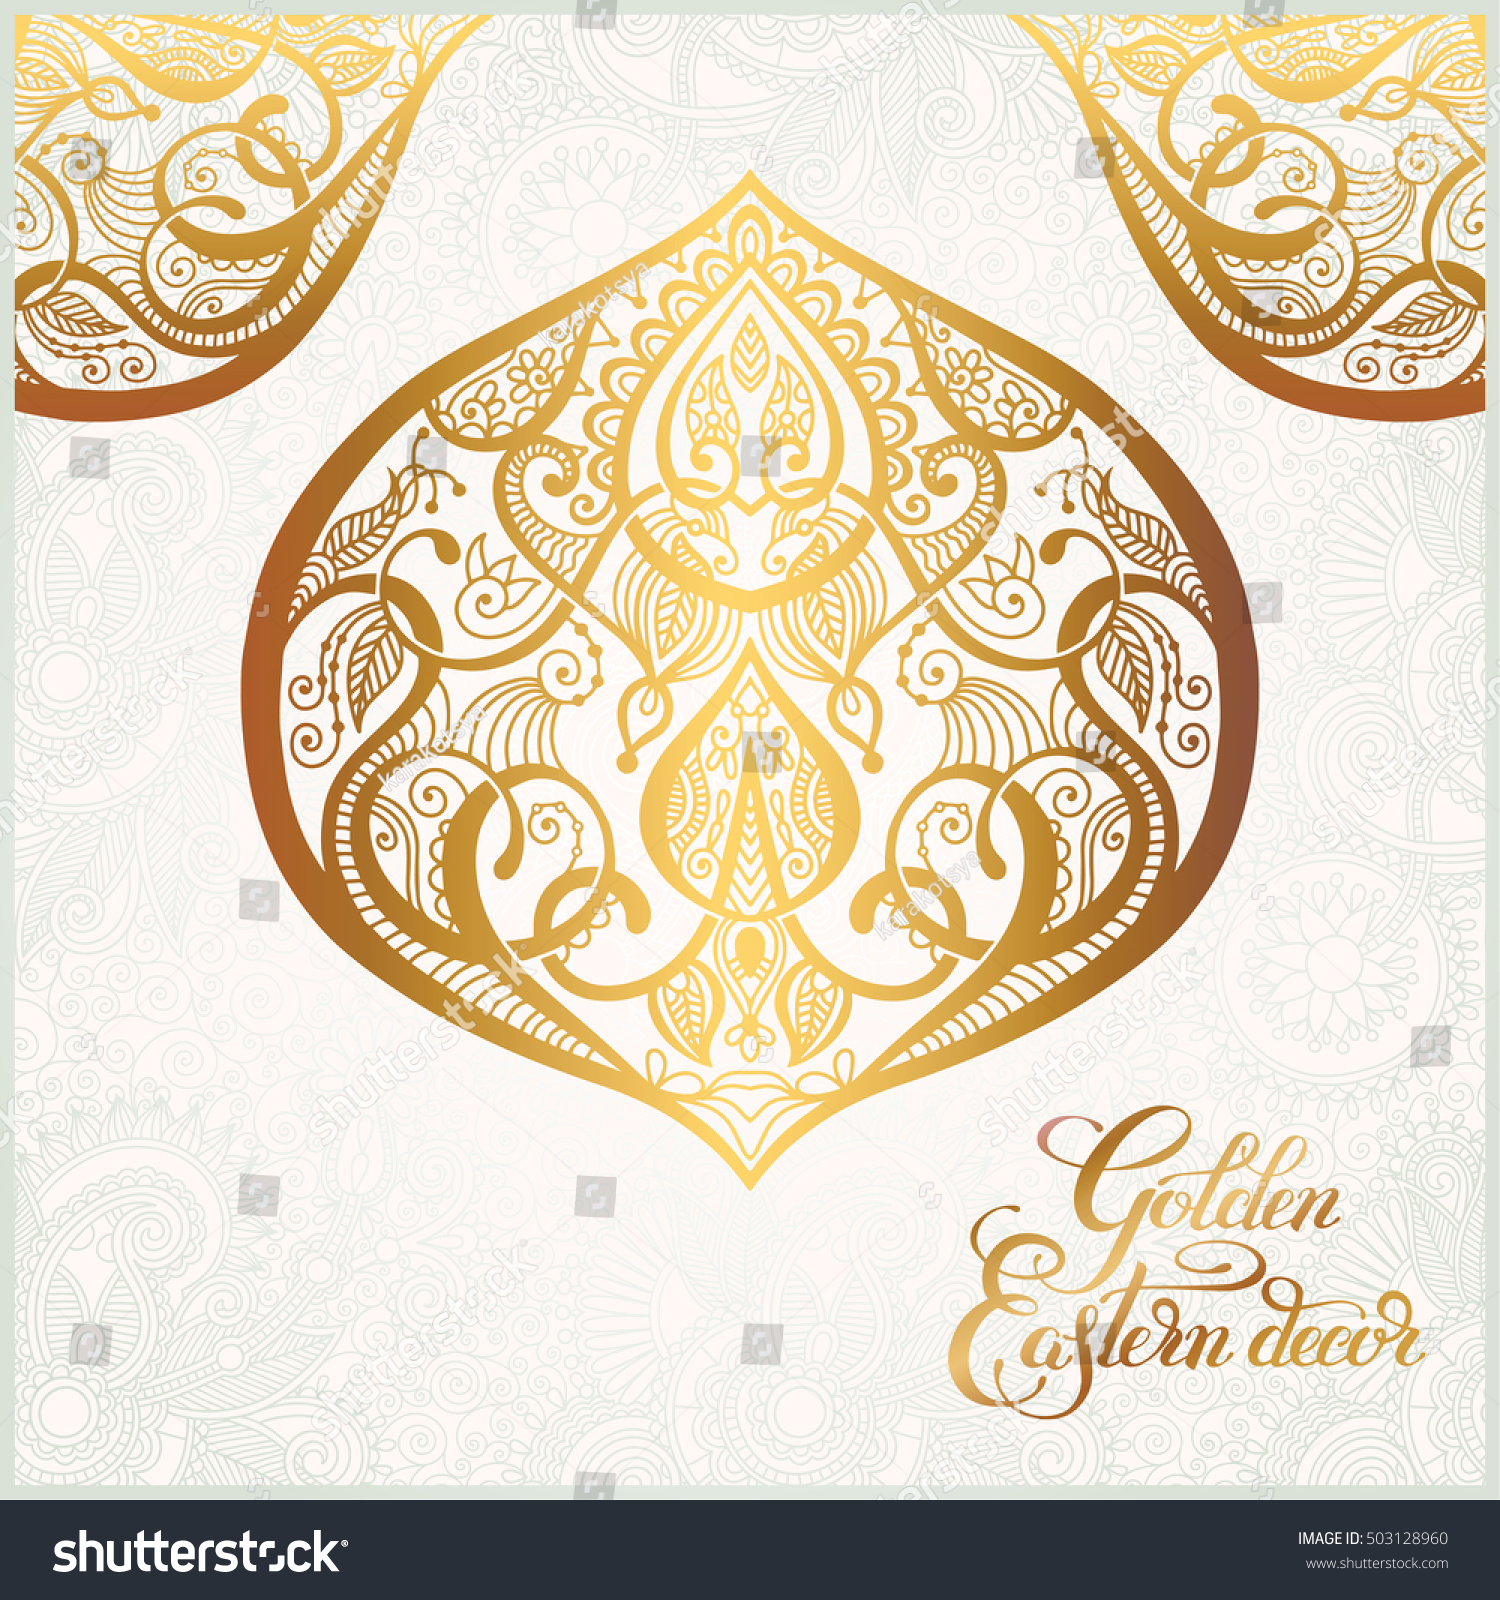 floral golden eastern decor with place for your text  paisley pattern for  wedding invitation. Floral Golden Eastern Decor Place Your Stock Vector 503128960